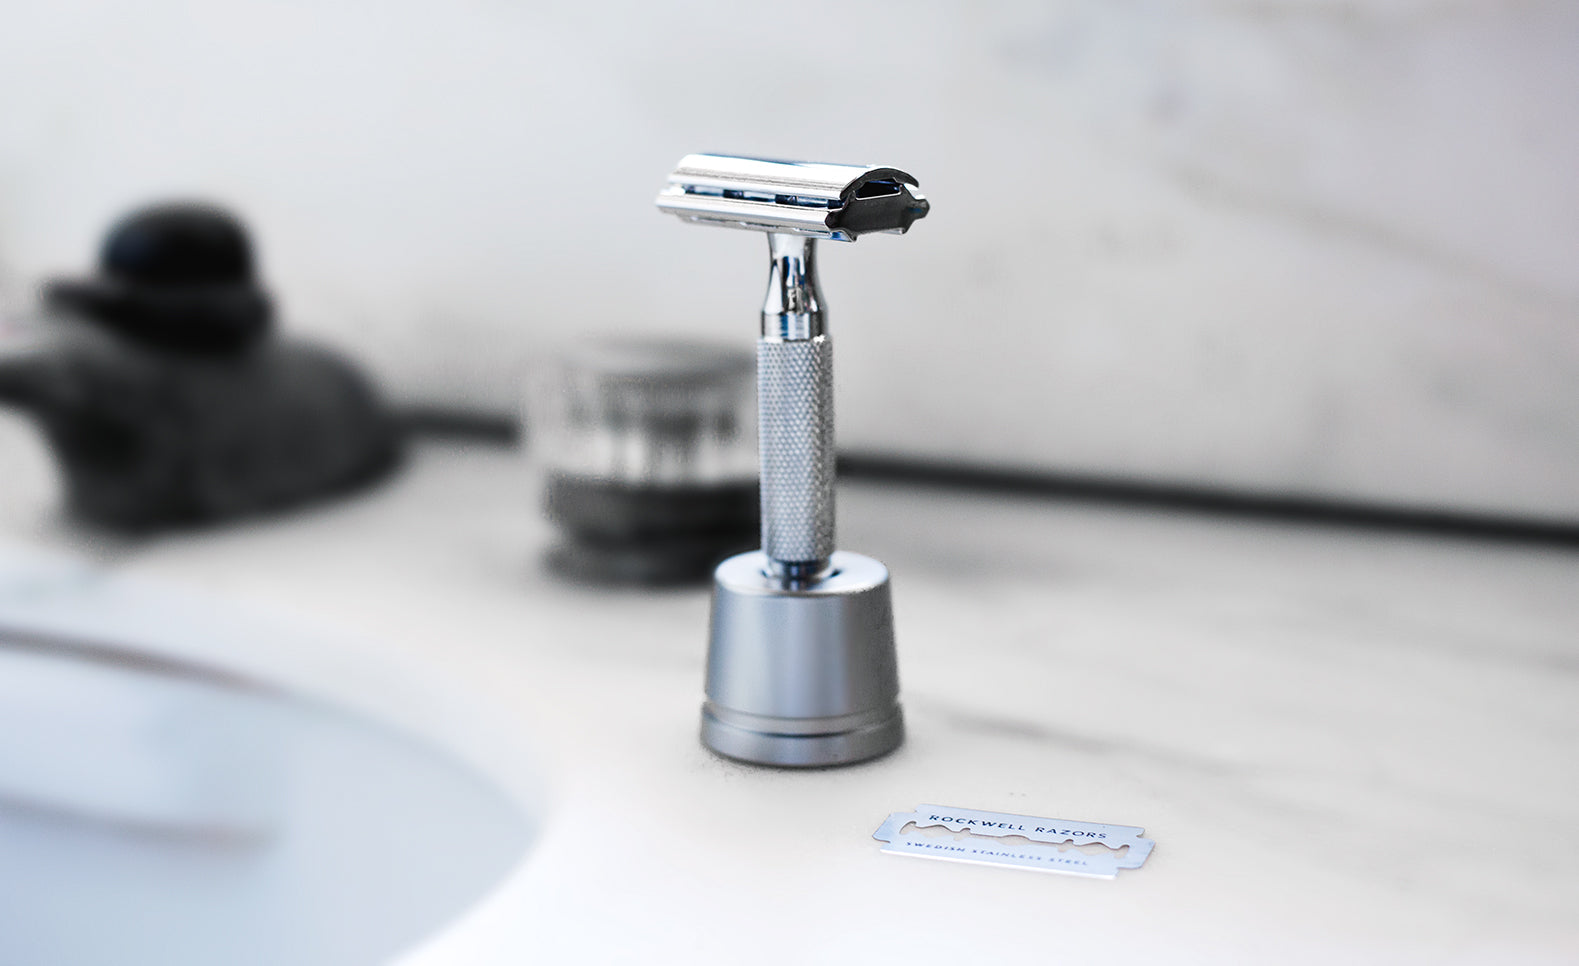 What is a Rockwell Razor?